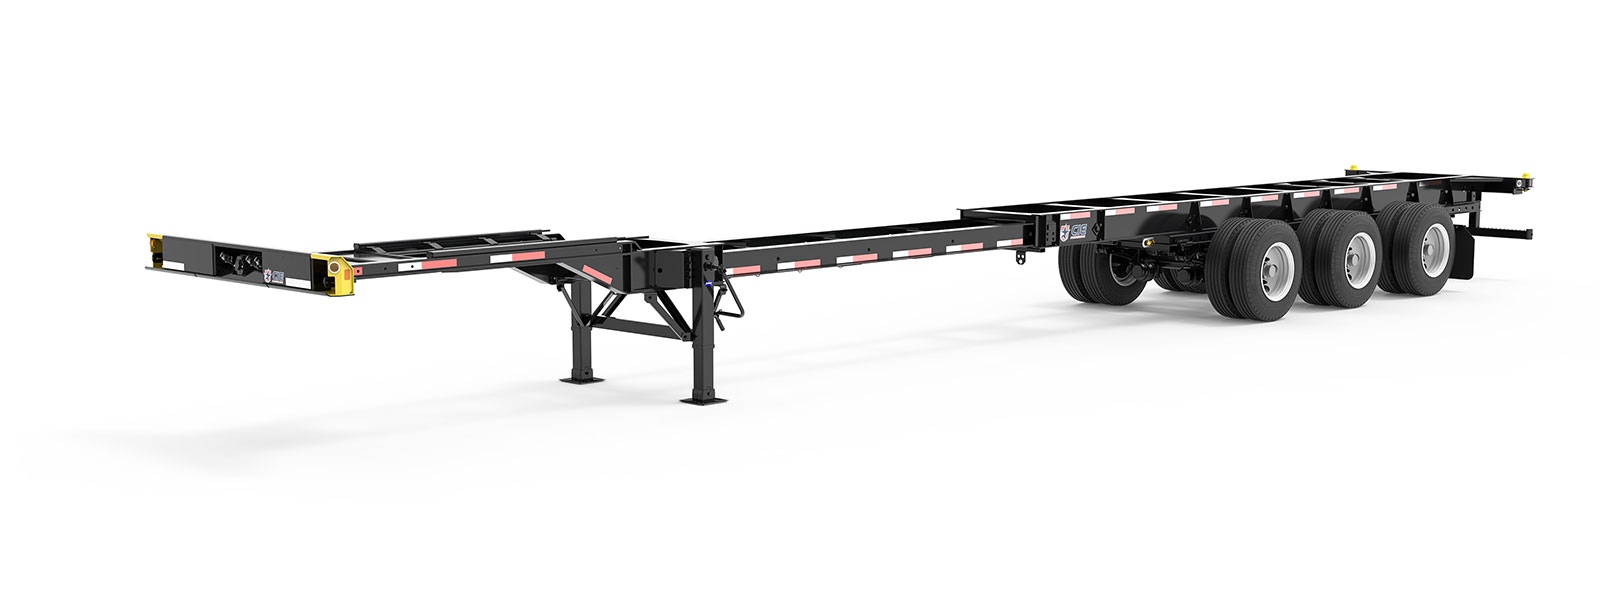 40-53' Extendable Tridem Container Chassis Literature Angle View Final